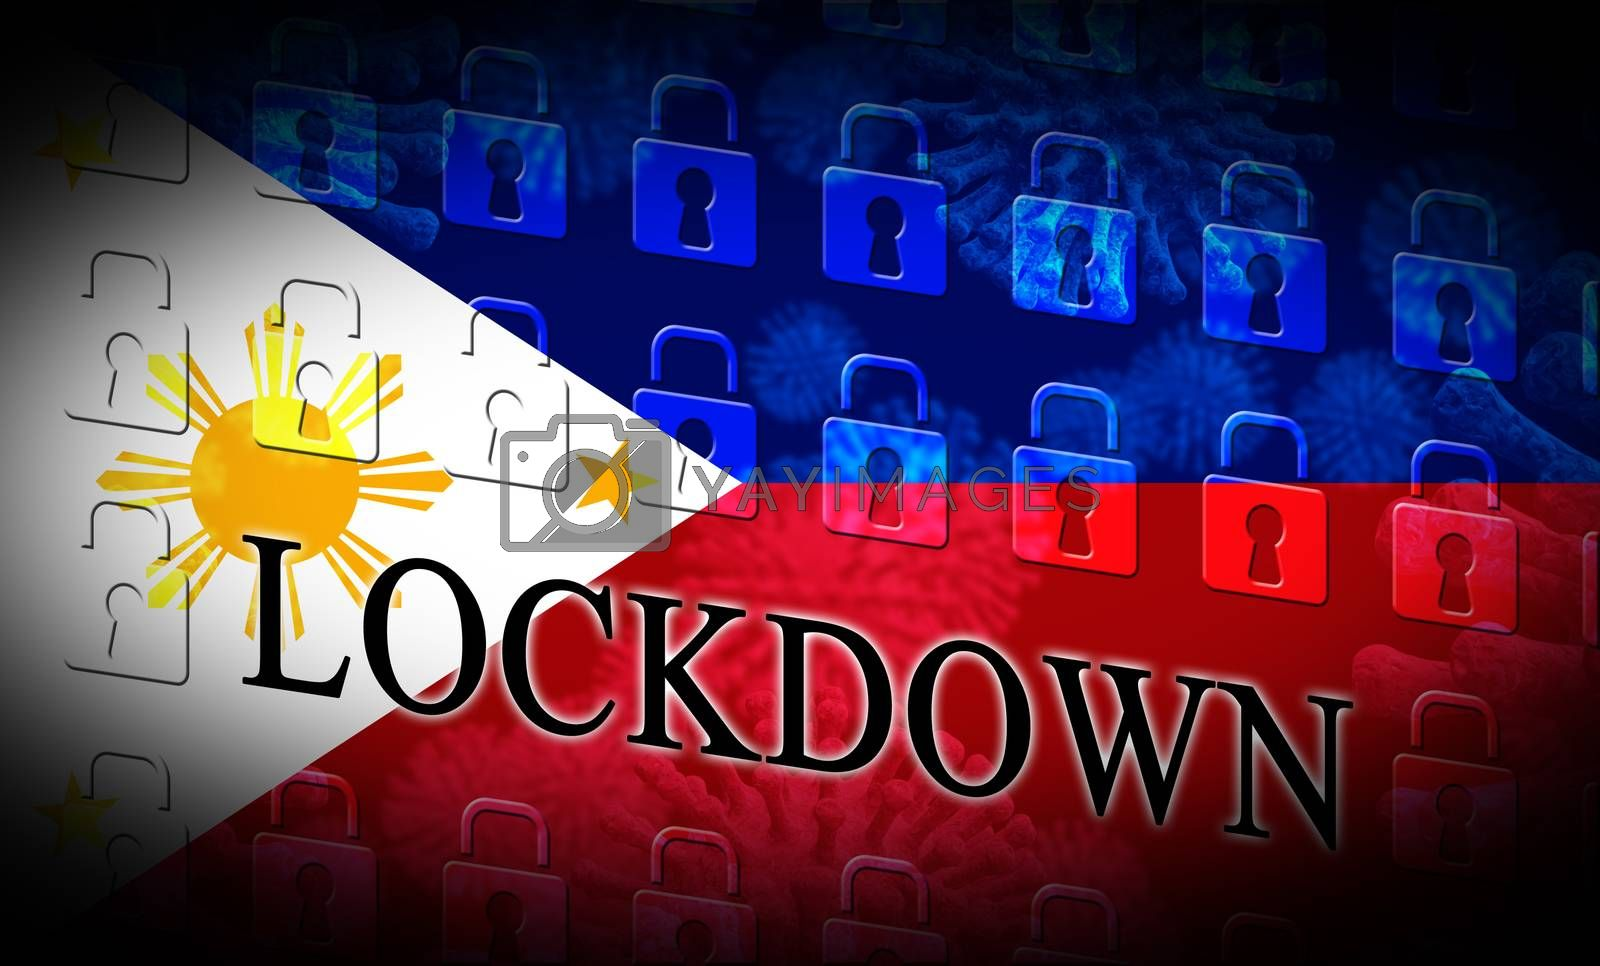 Philippines lockdown or shutdown preventing coronavirus epidemic outbreak. Covid 19 Pilipinas aim to lock down disease infection - 3d Illustration